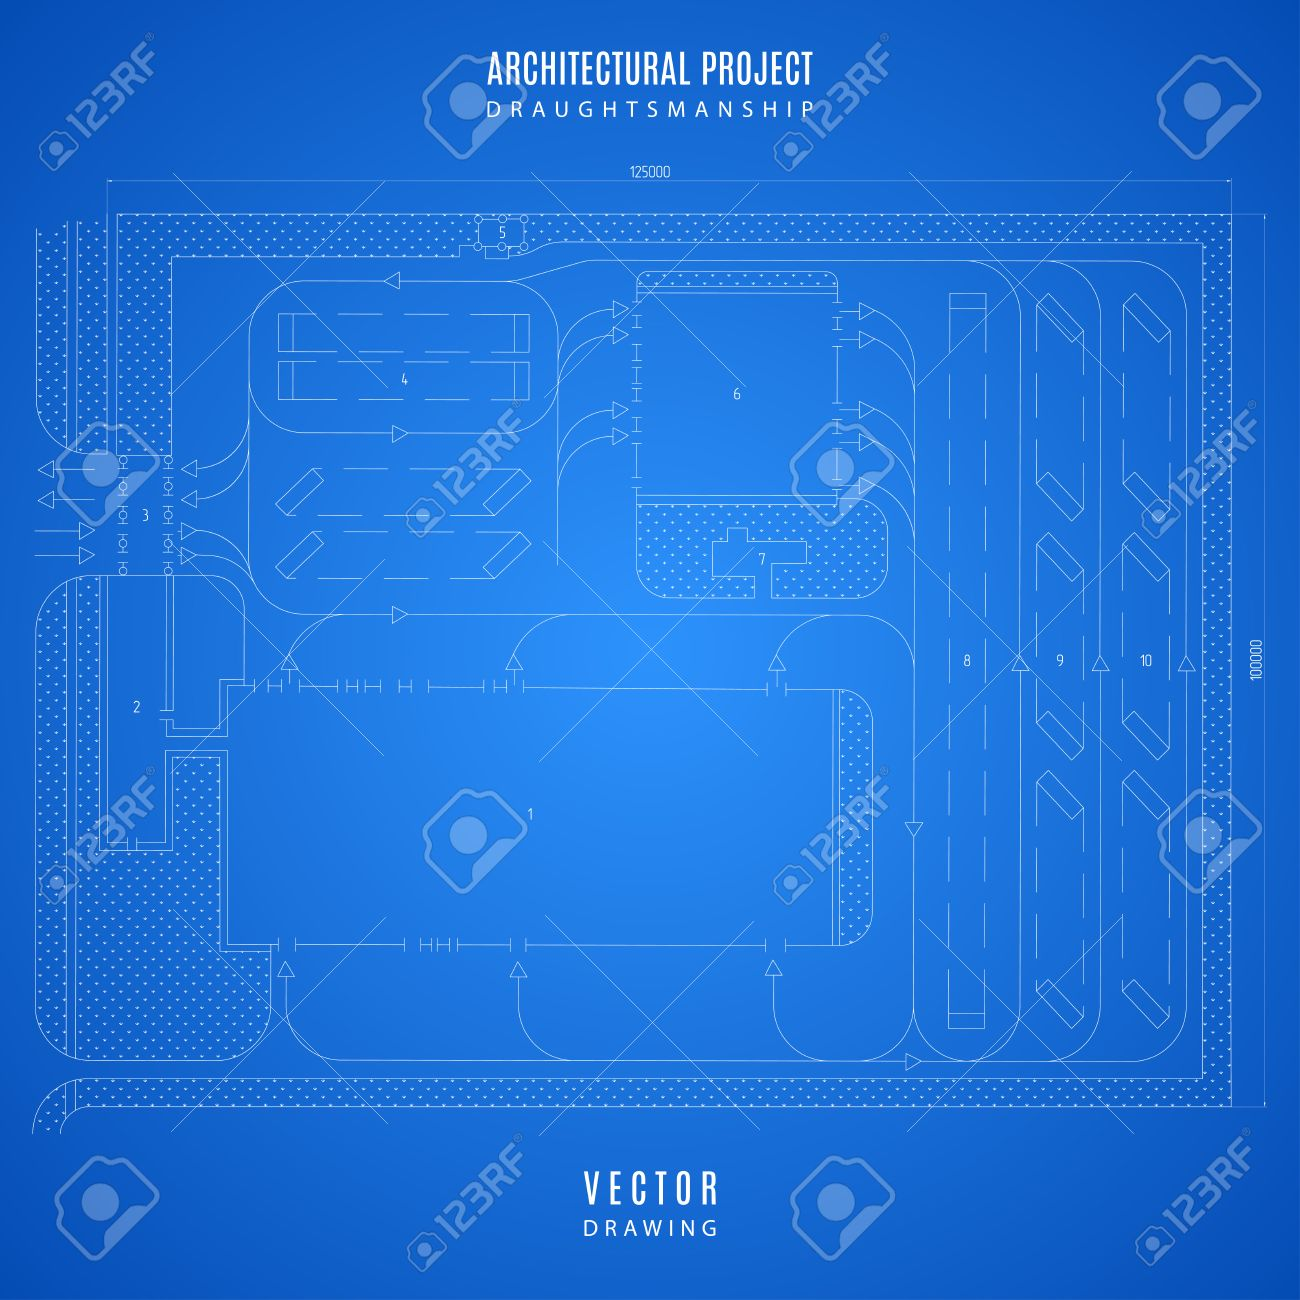 Architectural blueprint technical drawing construction plan architectural blueprint technical drawing construction plan or project on the blue background stock malvernweather Images